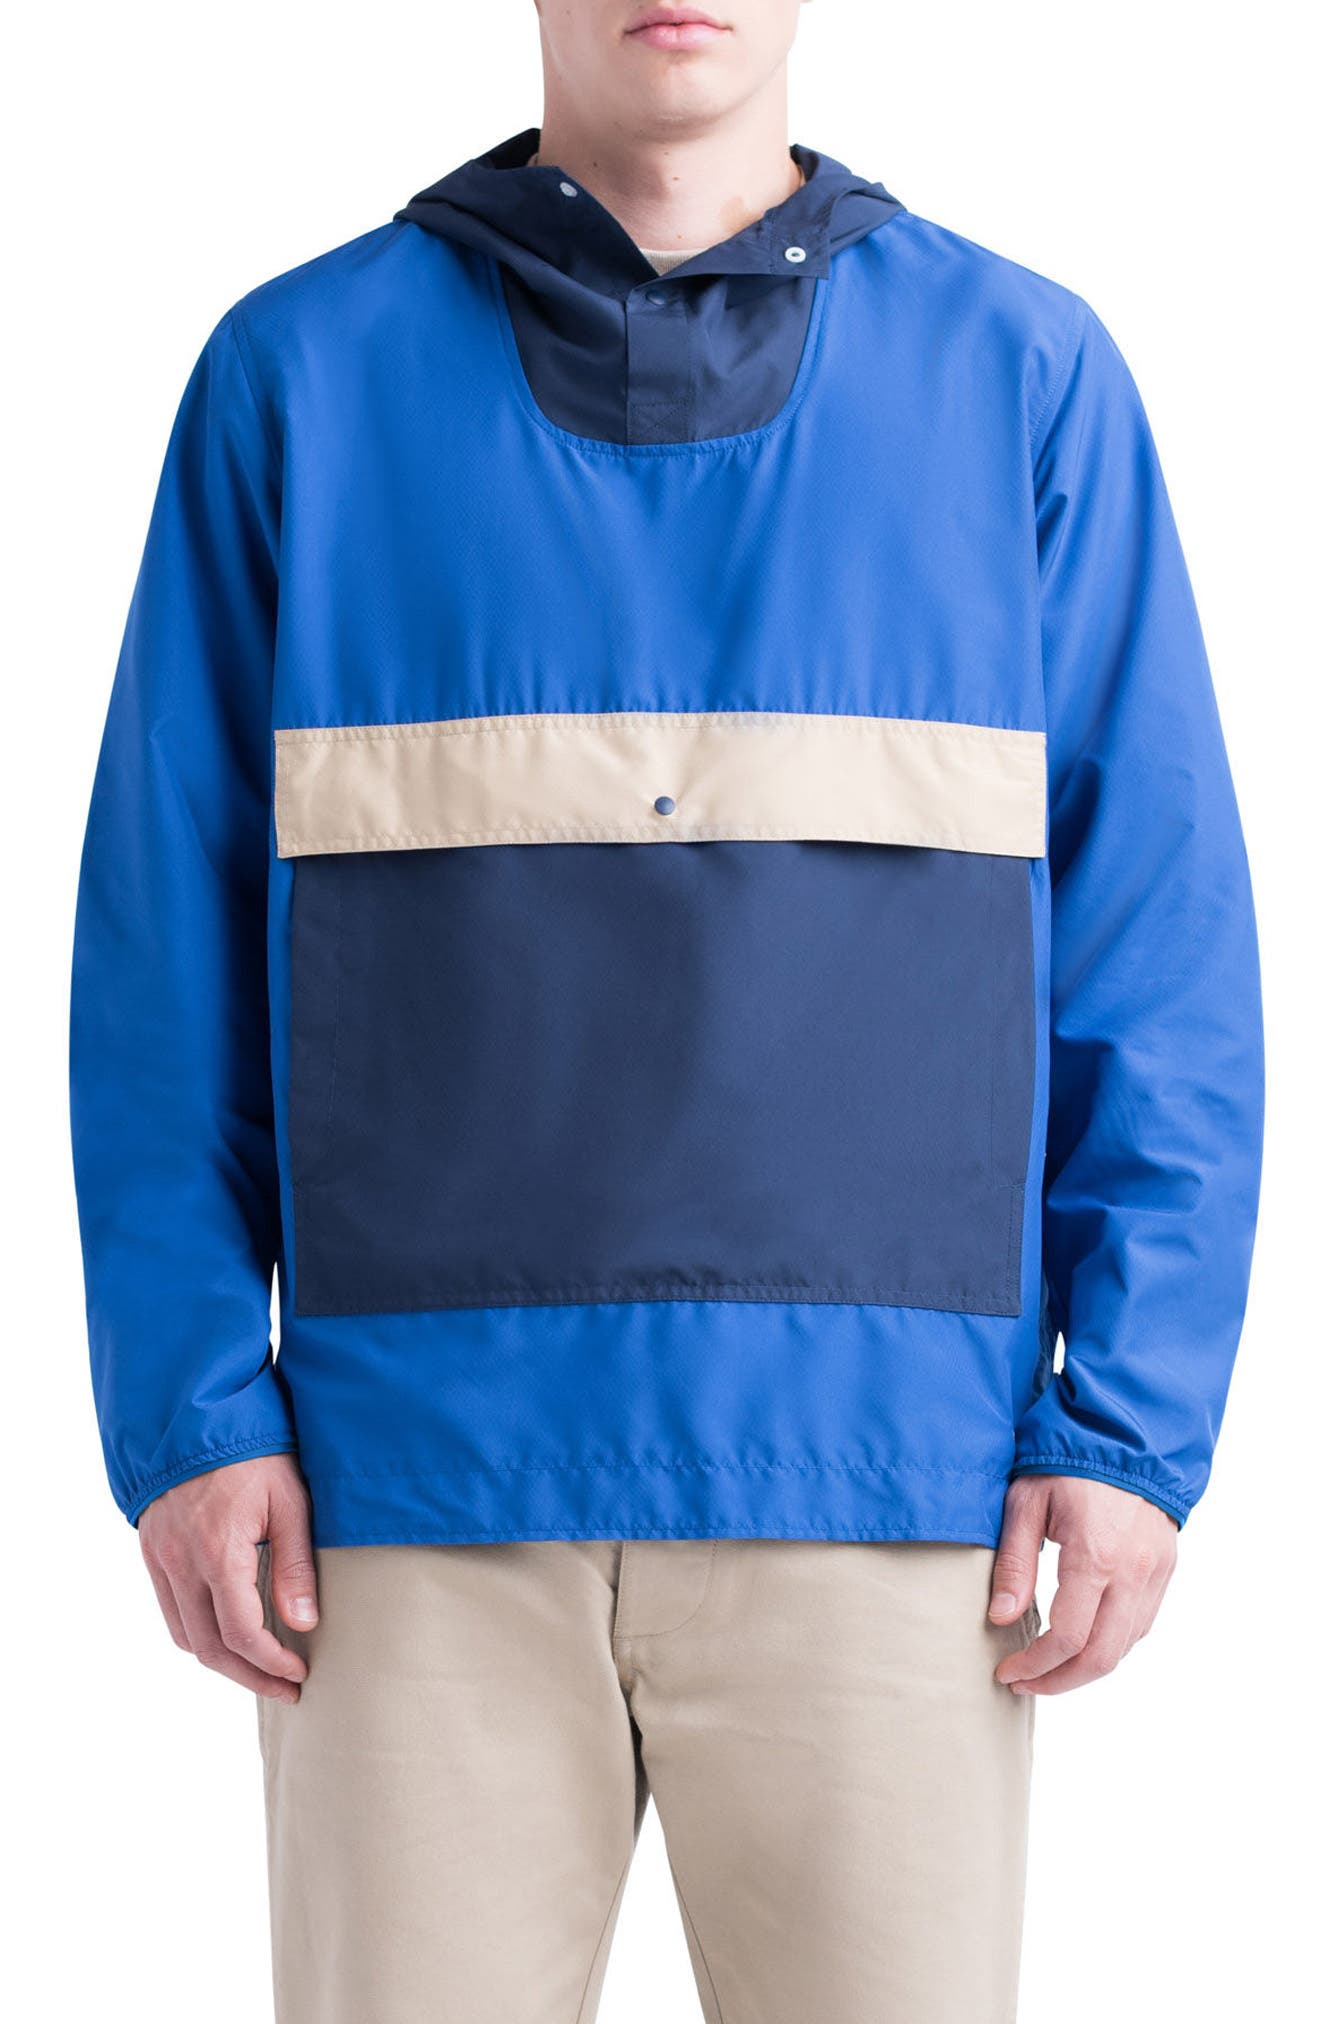 Voyage Anorak,                         Main,                         color, Surf The Web/ Peacoat/ Incense